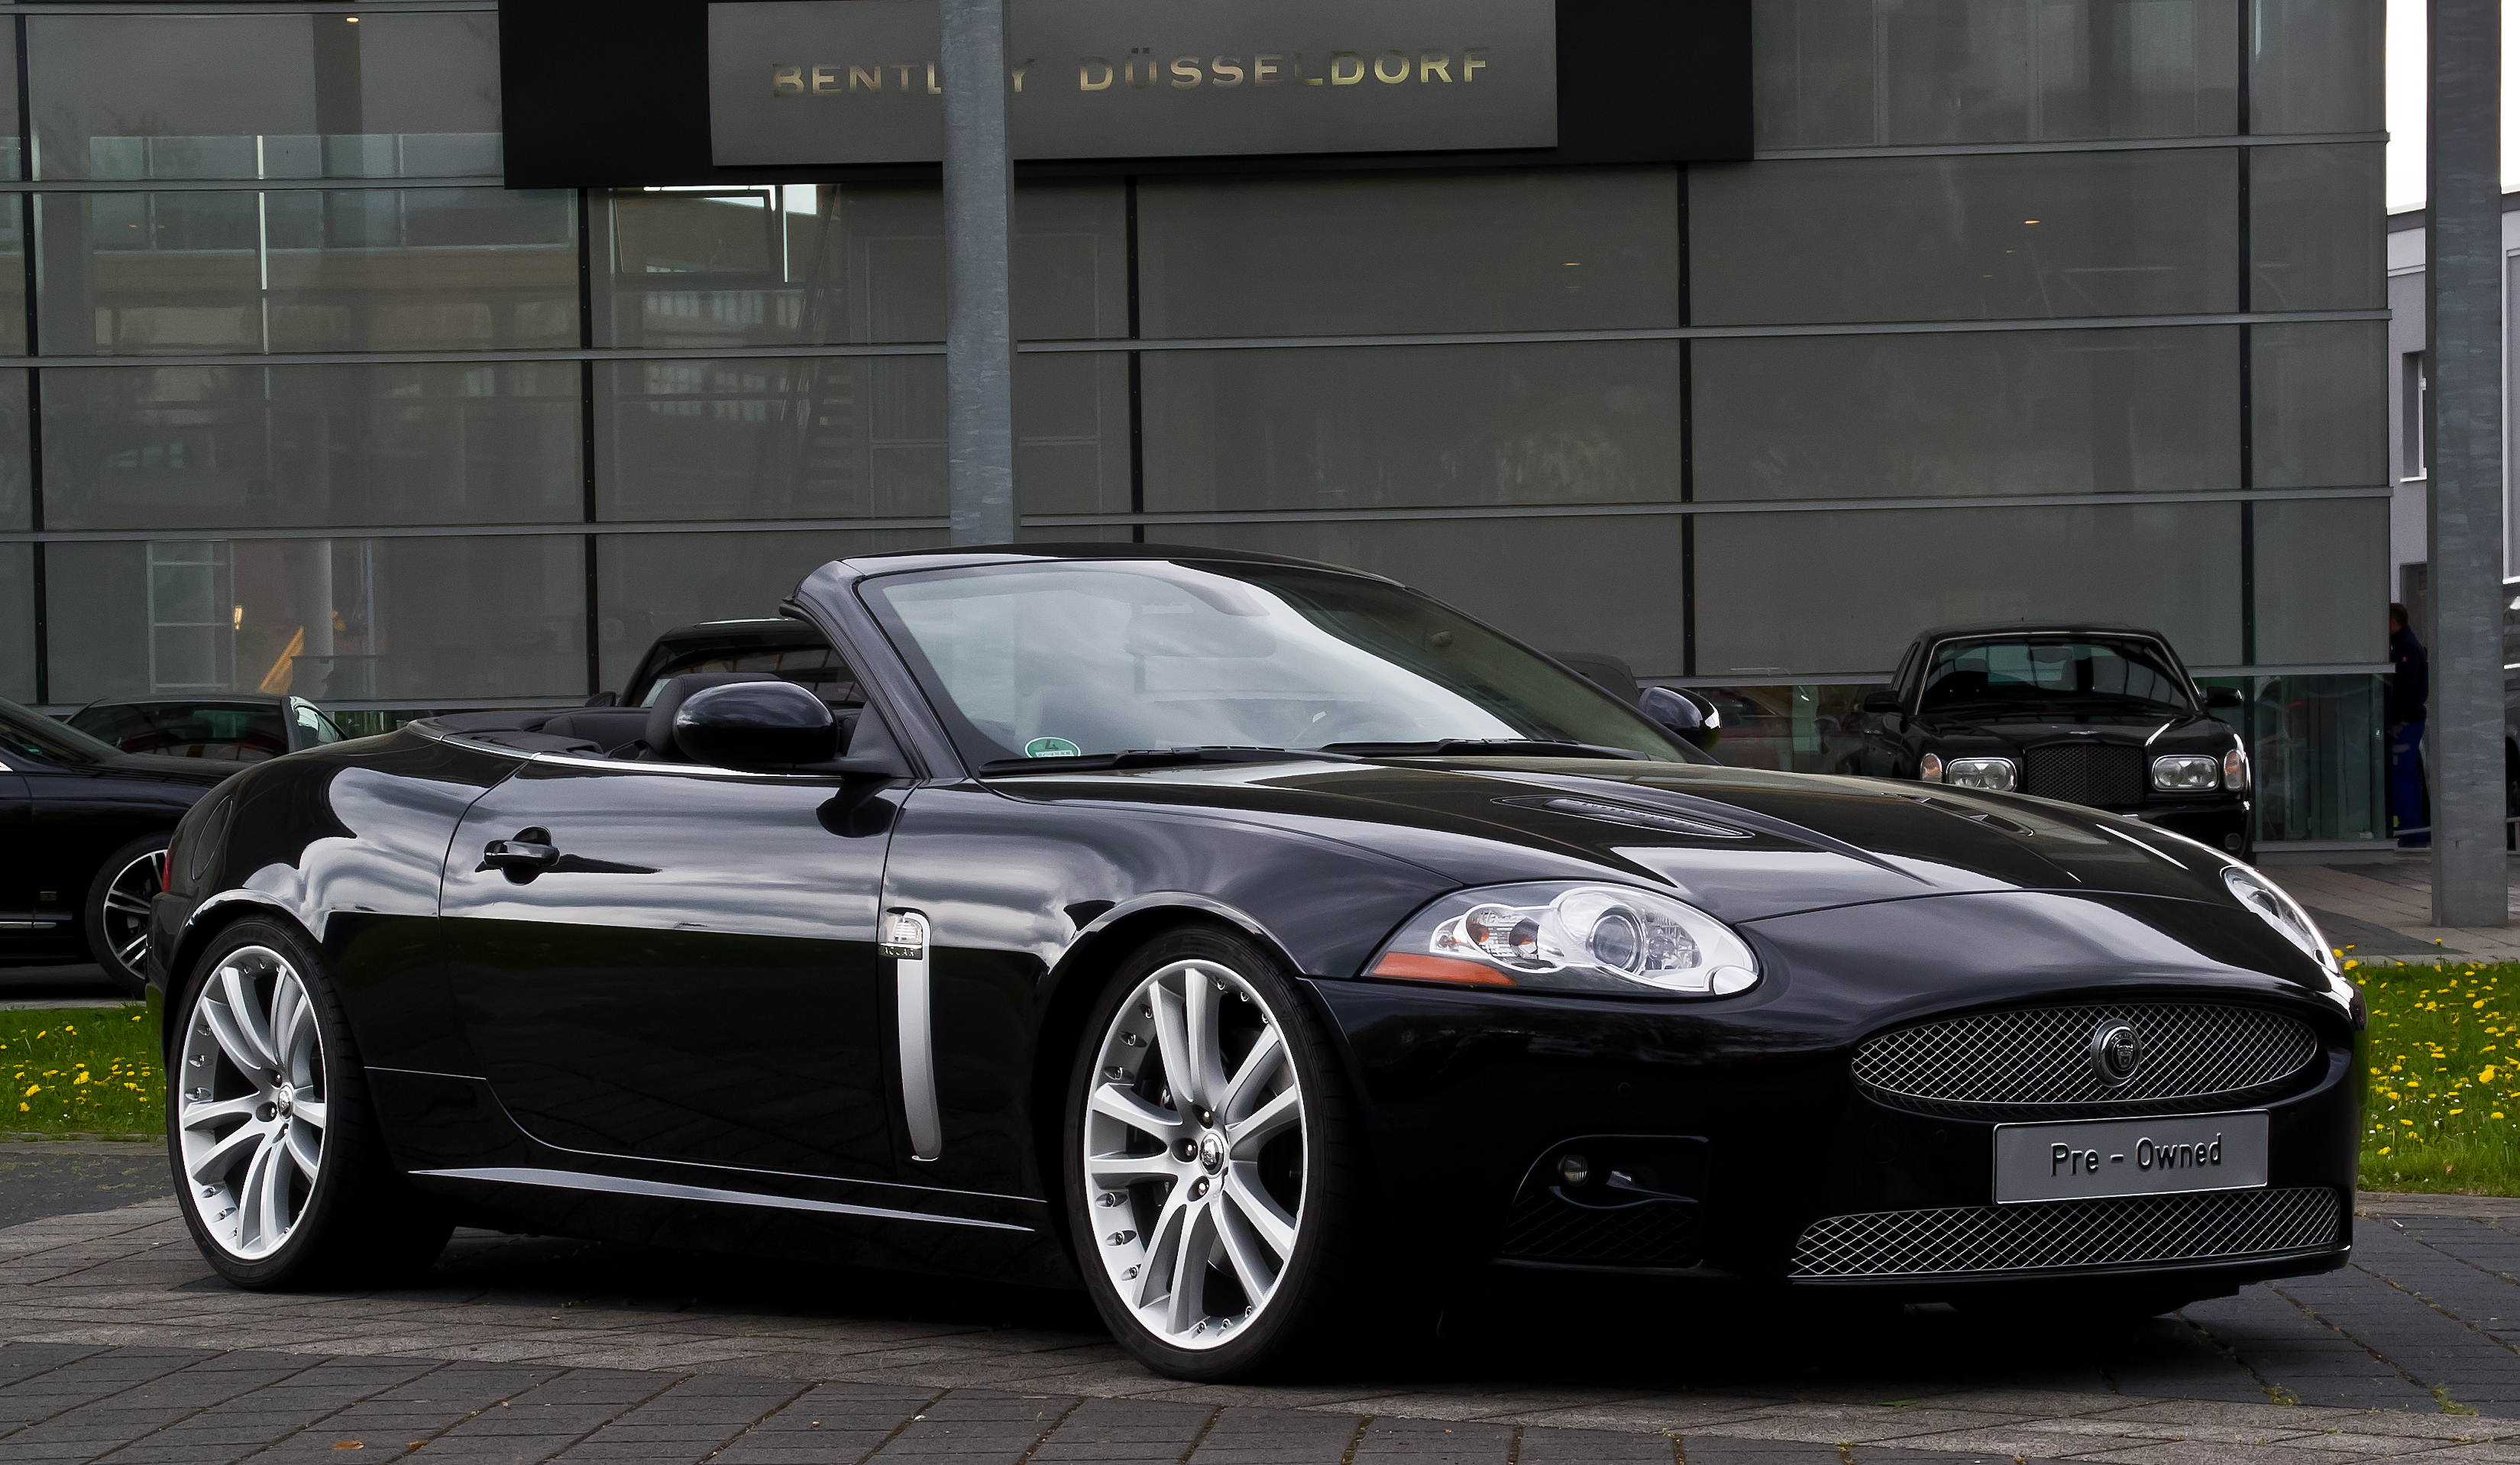 file jaguar xkr cabriolet x150 frontansicht 10 mai 2013 d wikimedia commons. Black Bedroom Furniture Sets. Home Design Ideas